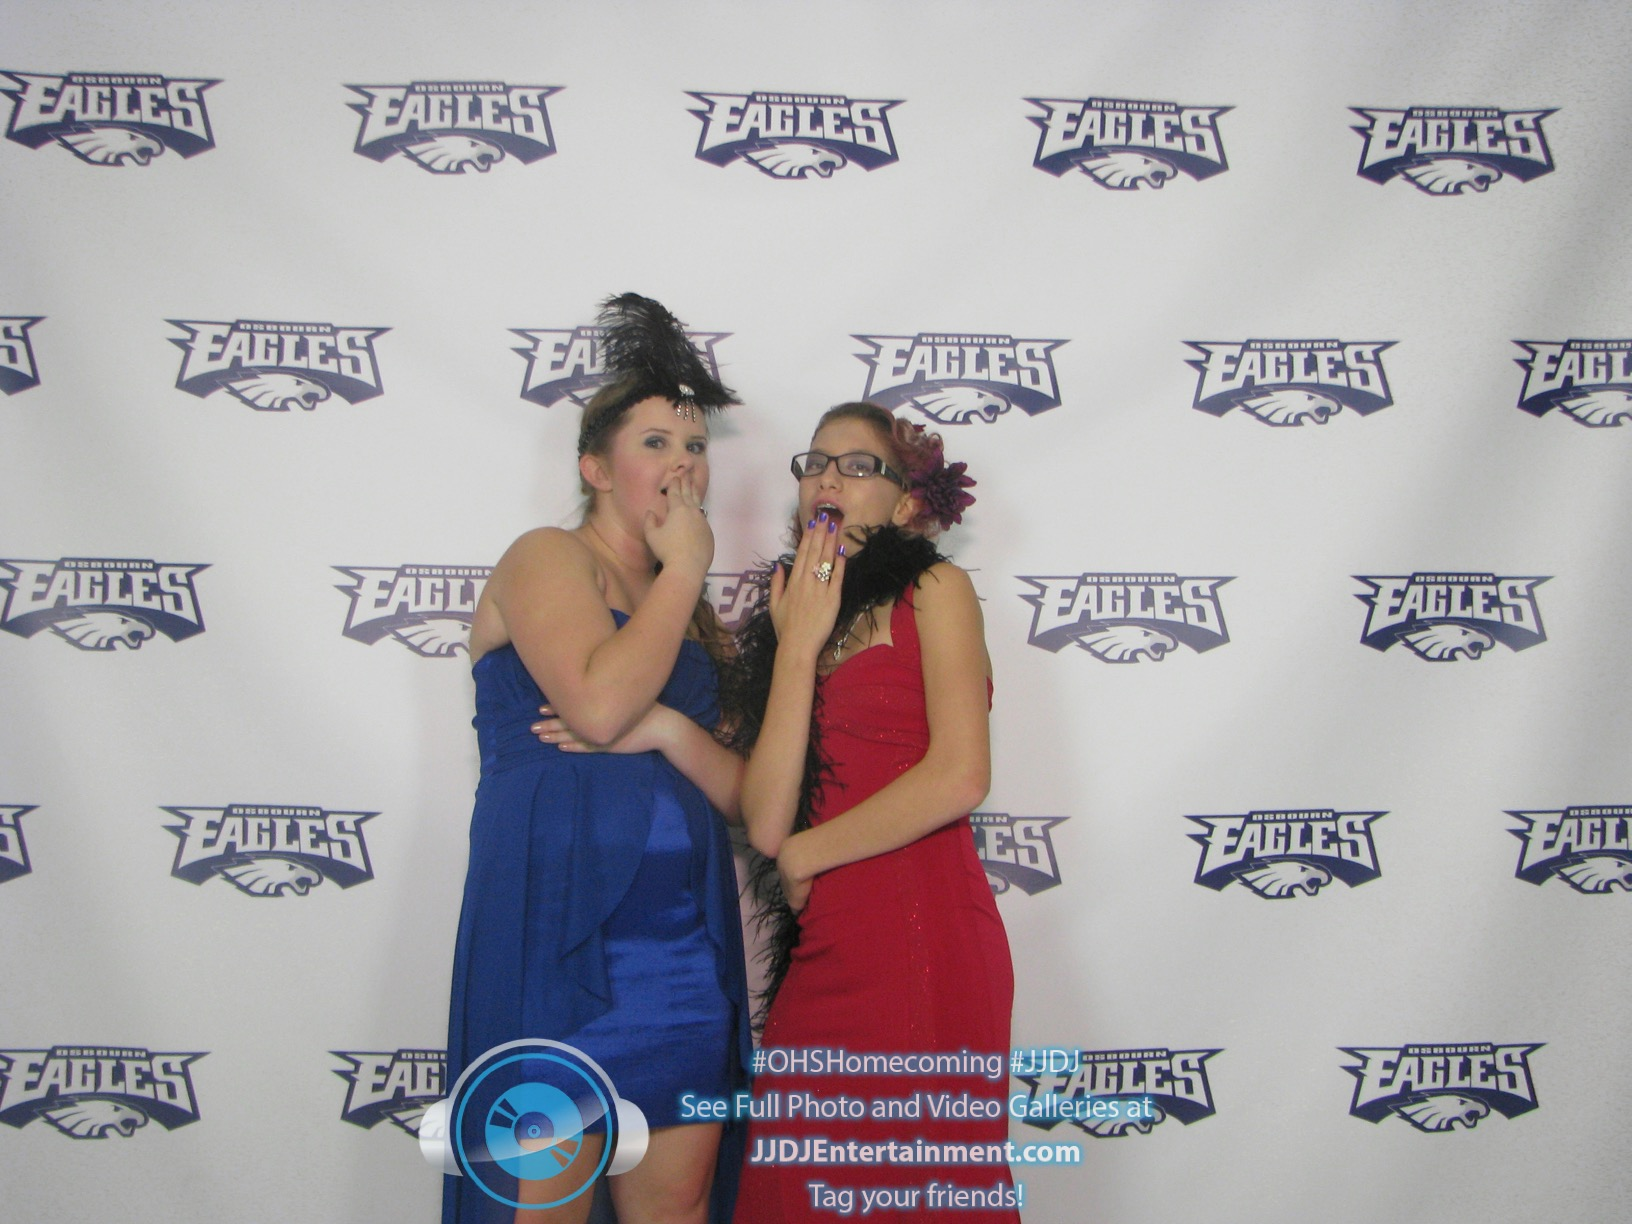 OHS 2014 Homecoming Photobooth -220